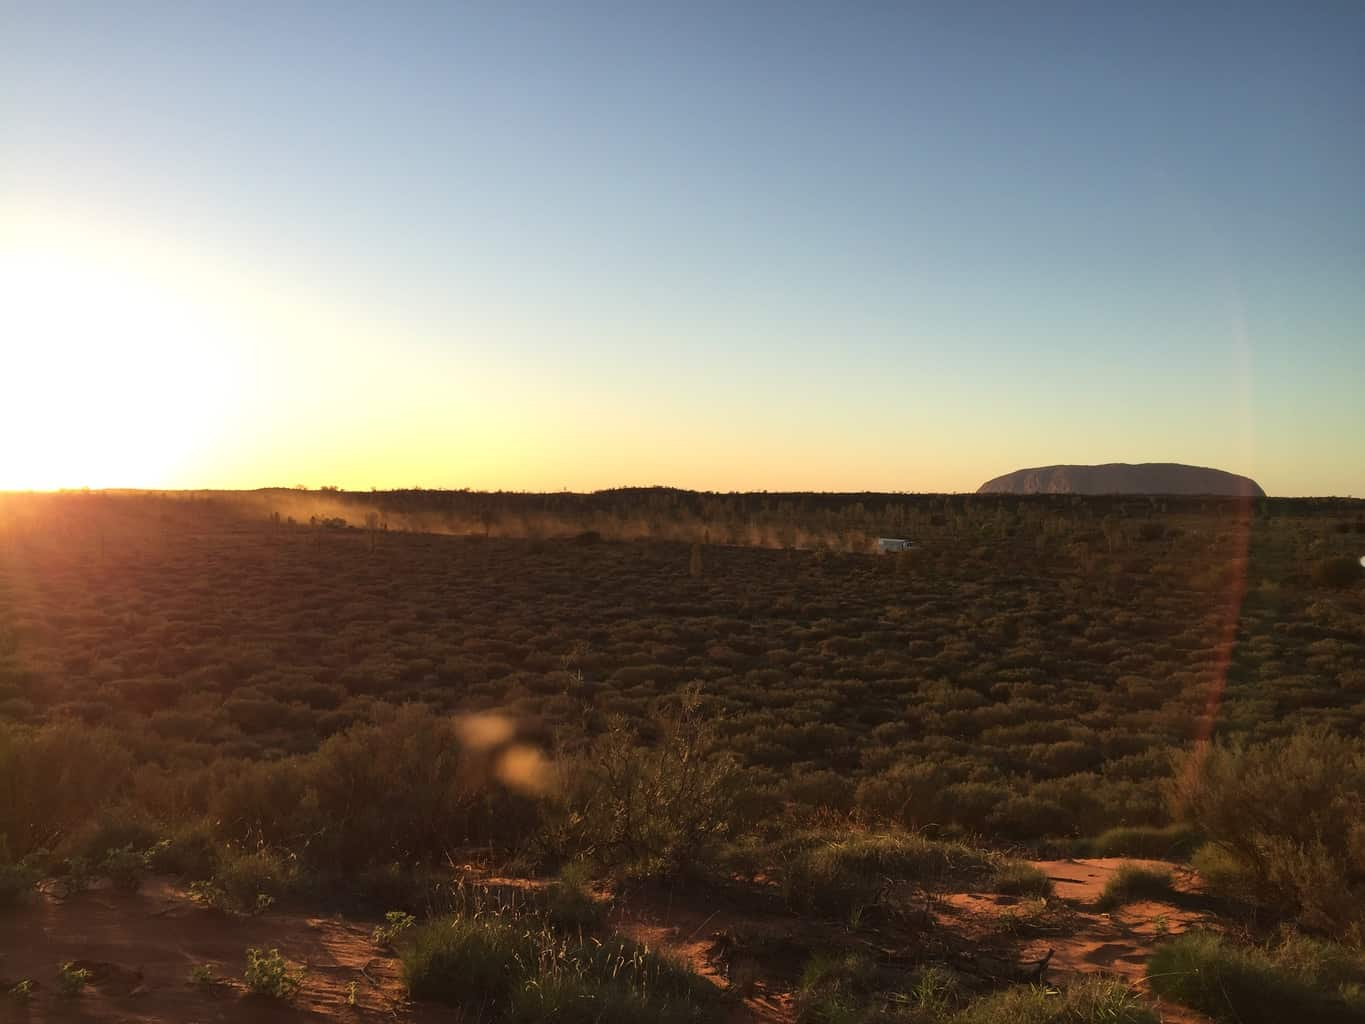 The Outback: Sun, Stars, Sand and Some Big Rocks